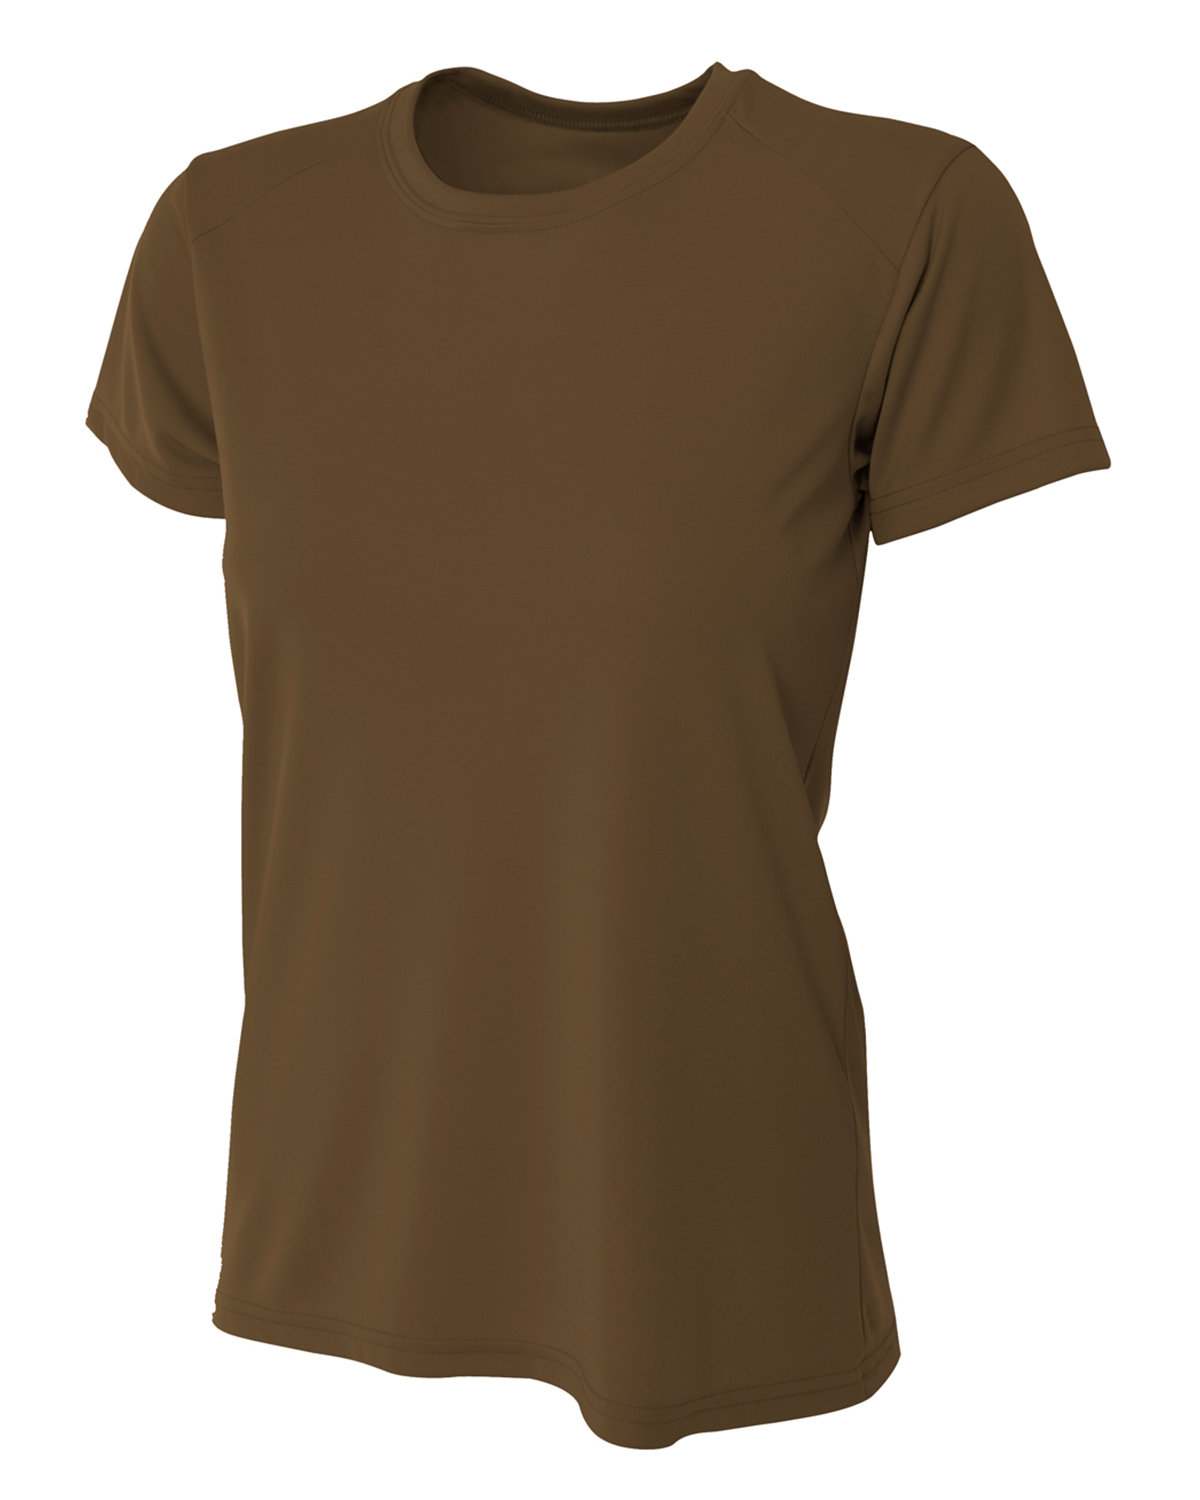 A4 Ladies' Cooling Performance T-Shirt BROWN